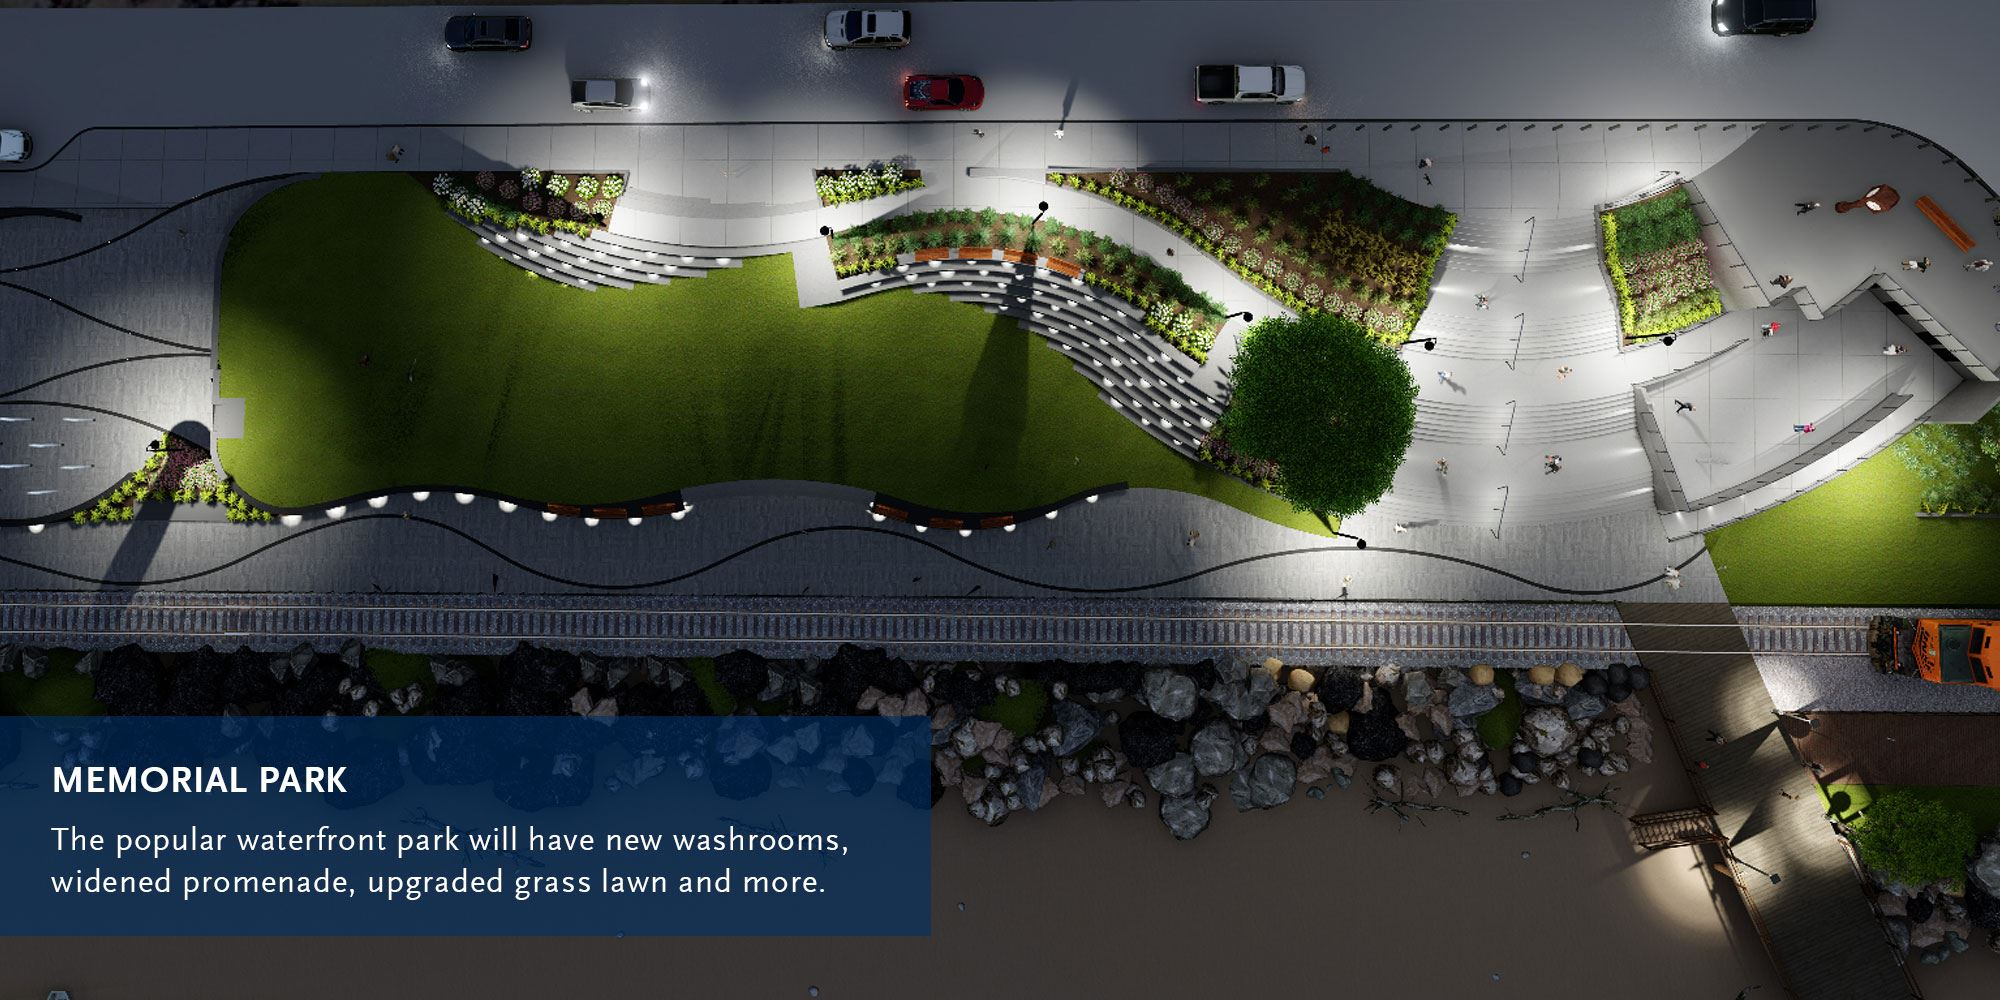 Concept image of Memorial Park